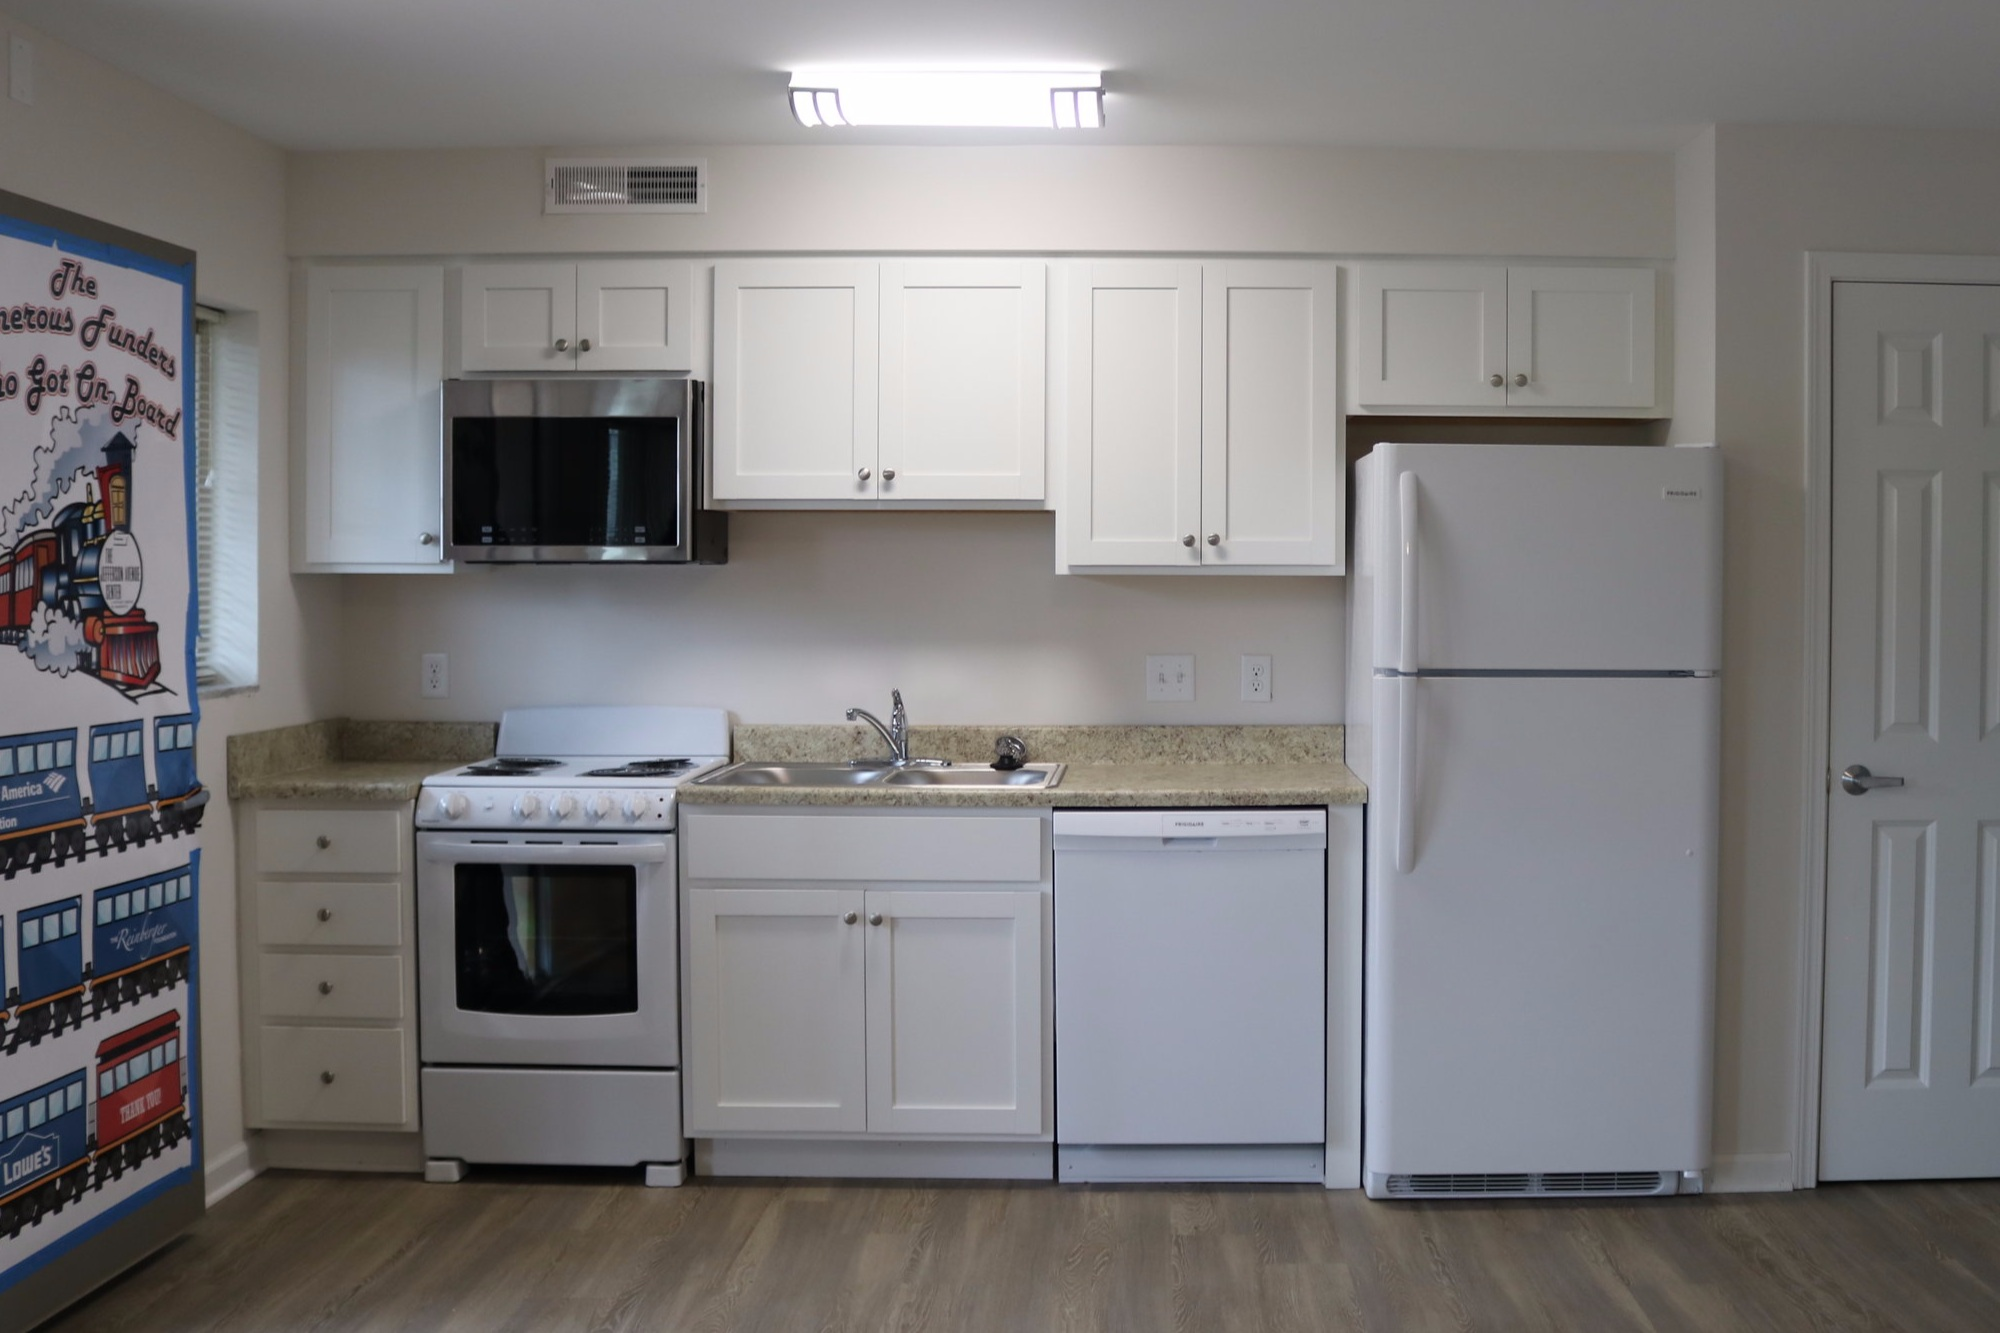 KITCHEN // AFTER:  All new cabinets, appliances, windows, doors, and closet with plenty of storage